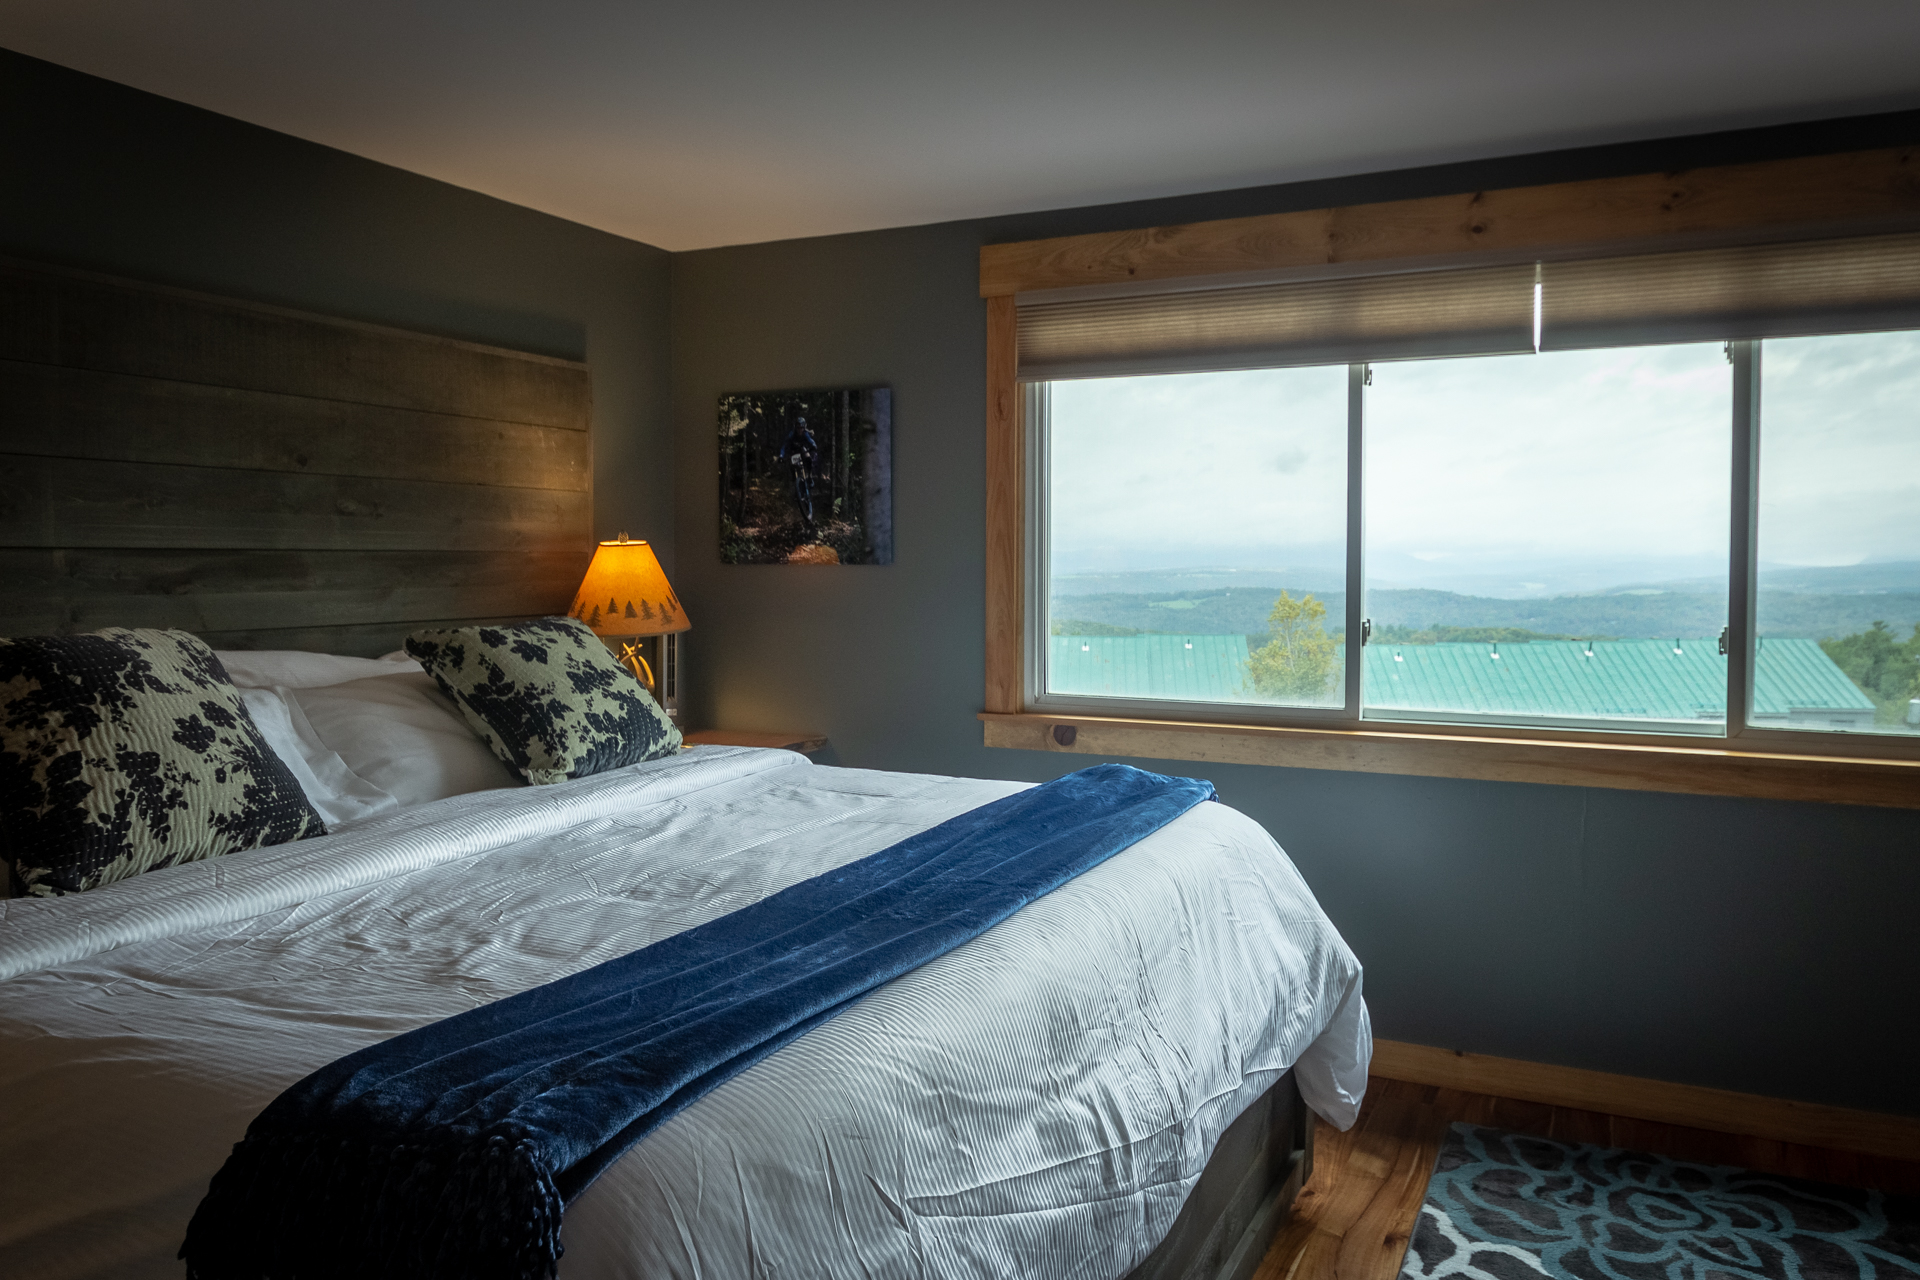 Master bedroom with views of Willoughby Gap with fold out couch